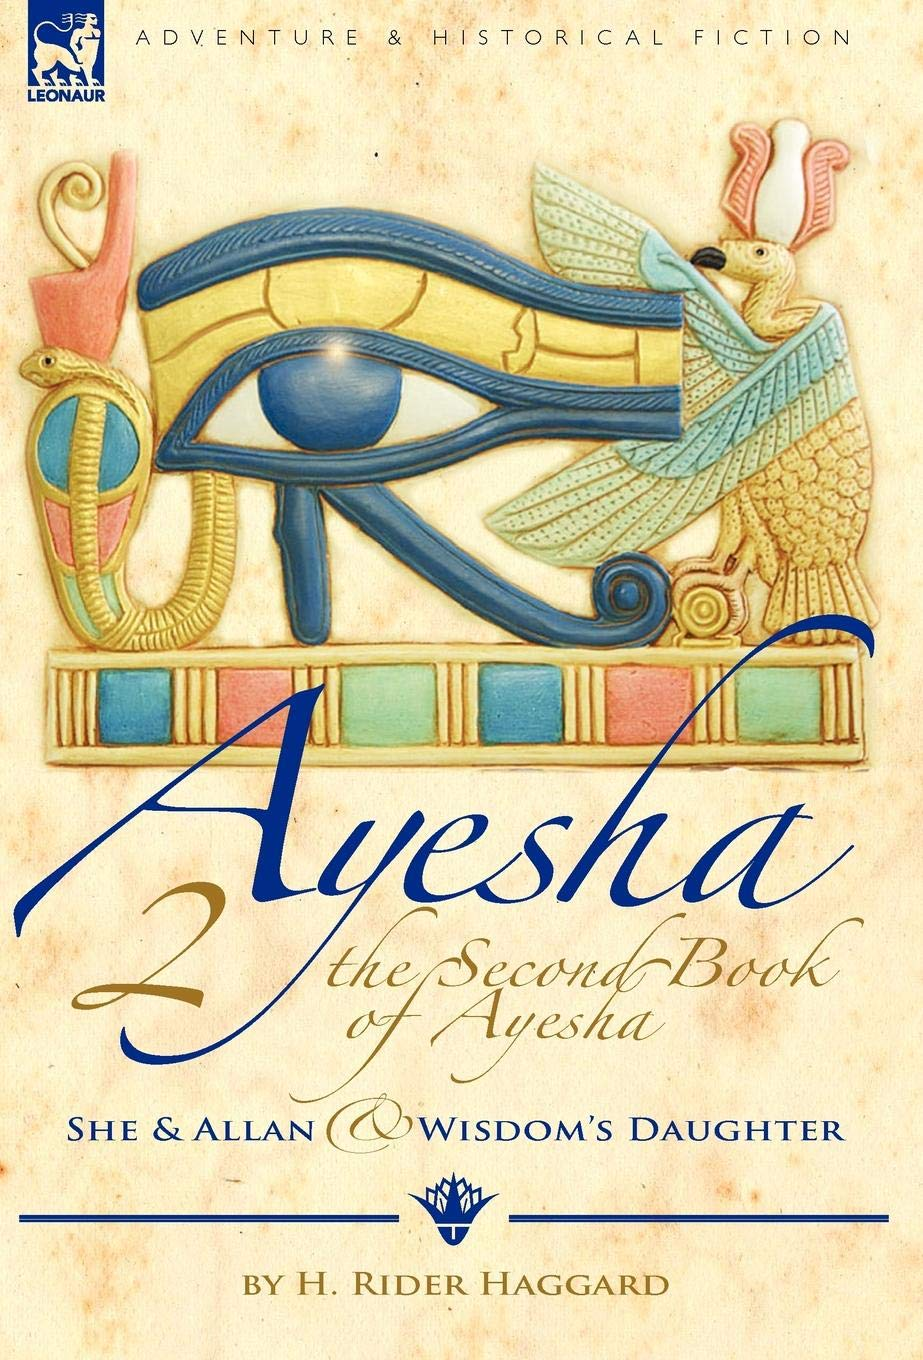 Read Online The Second Book of Ayesha-She and Allan & Wisdom's Daughter PDF